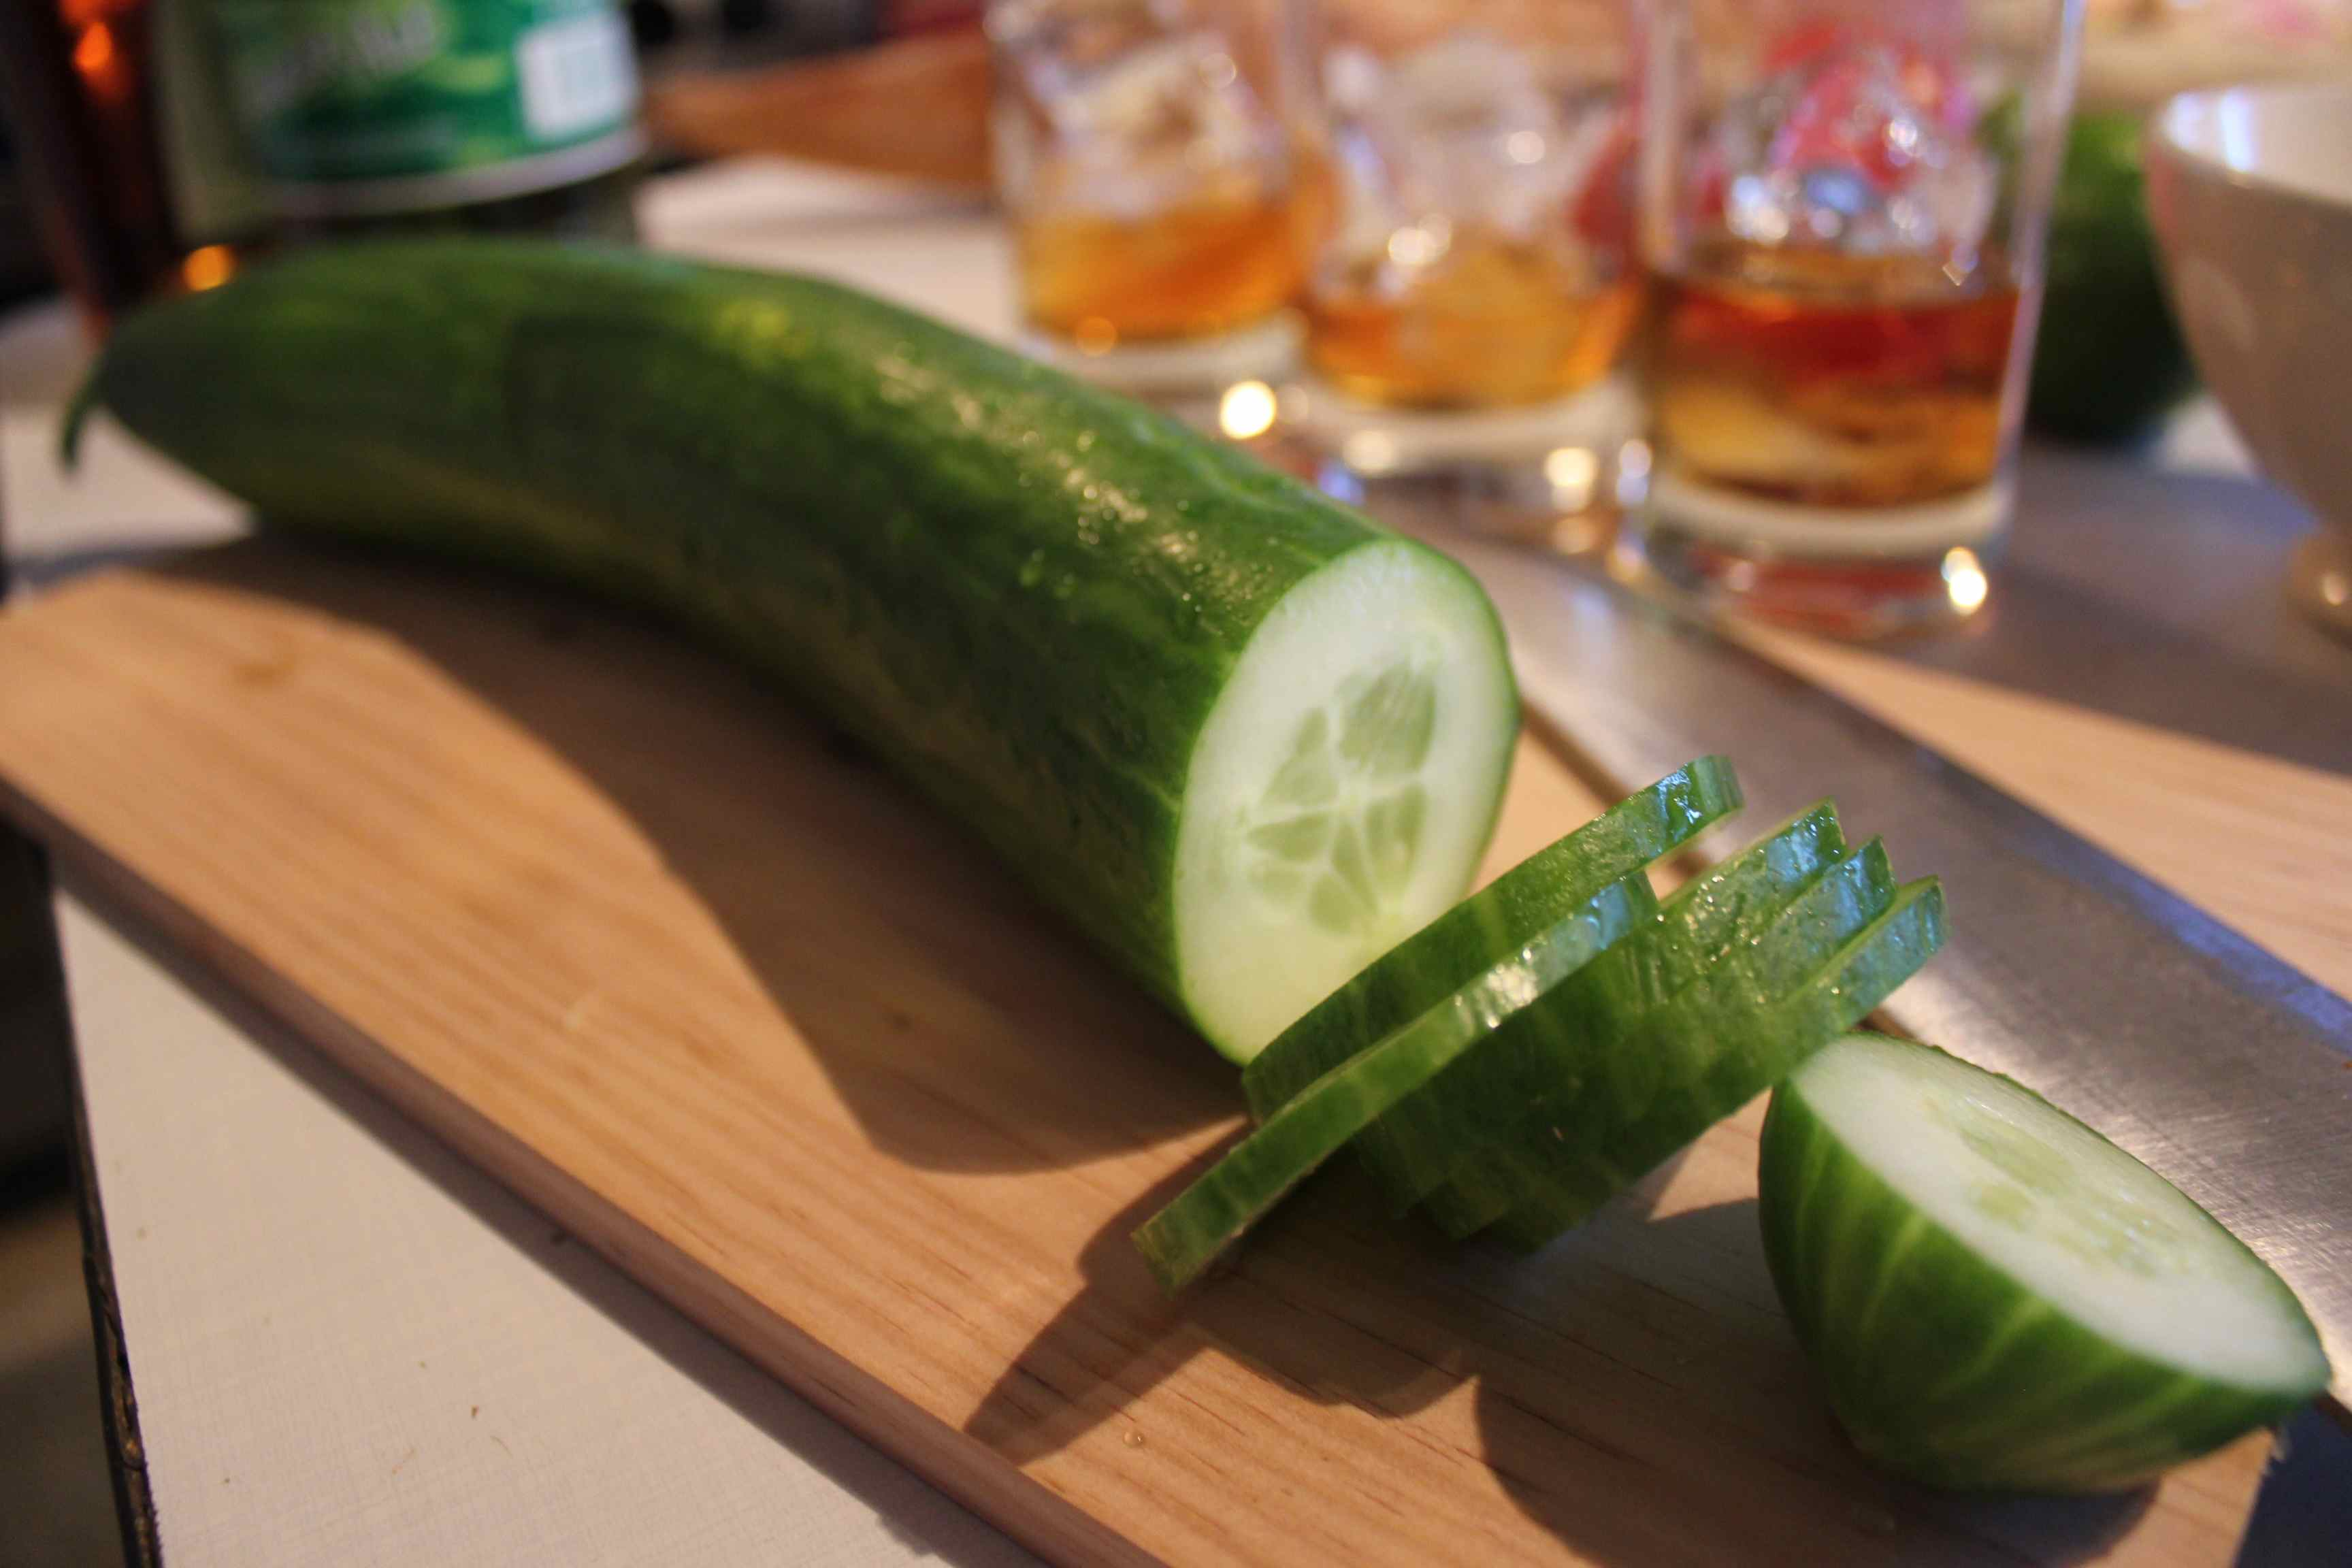 Cucumber cutting